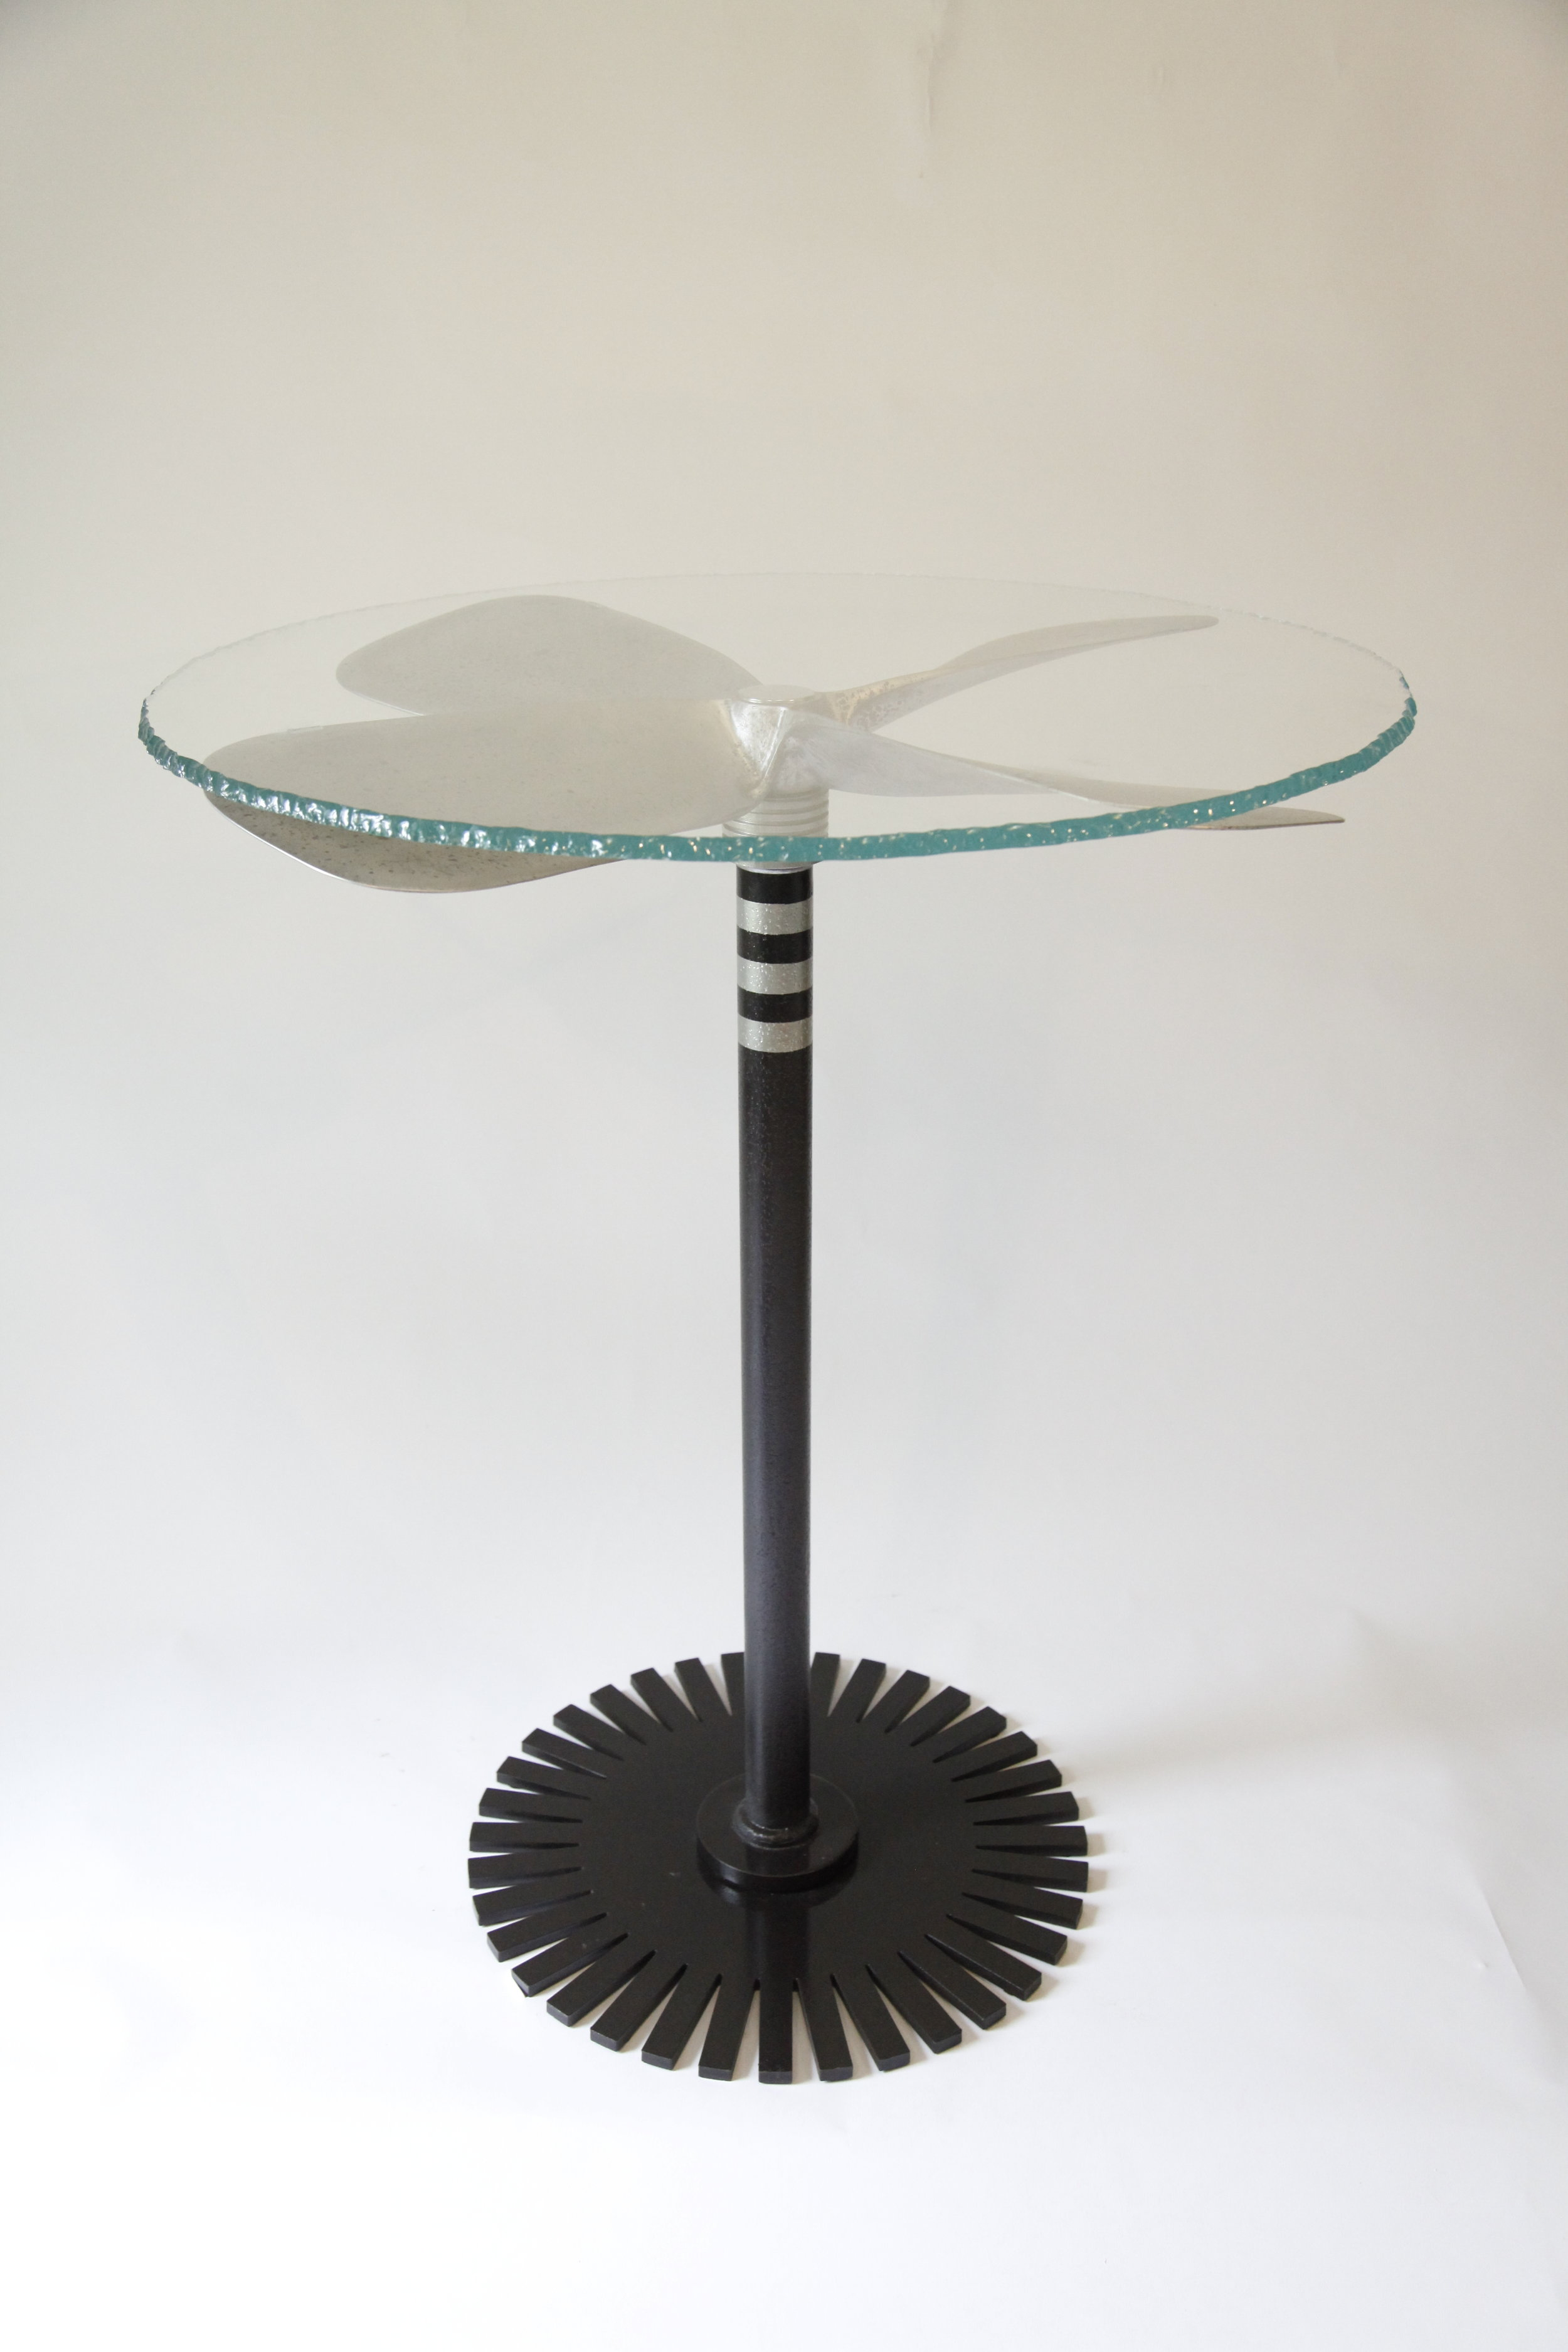 Jim Weitzel - Propeller Table W glass top.JPG